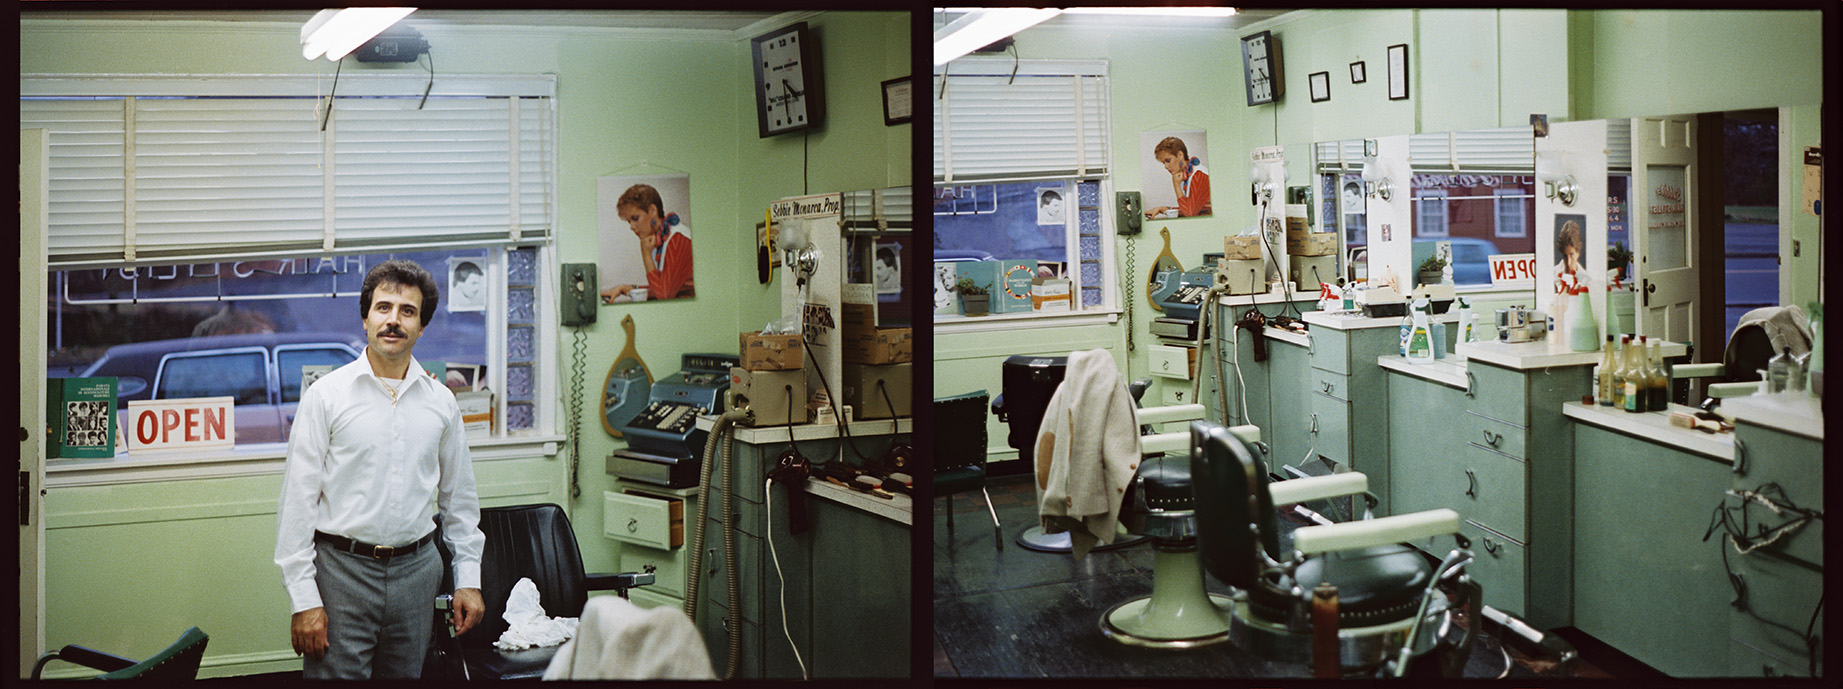 Middletown Barbershop II